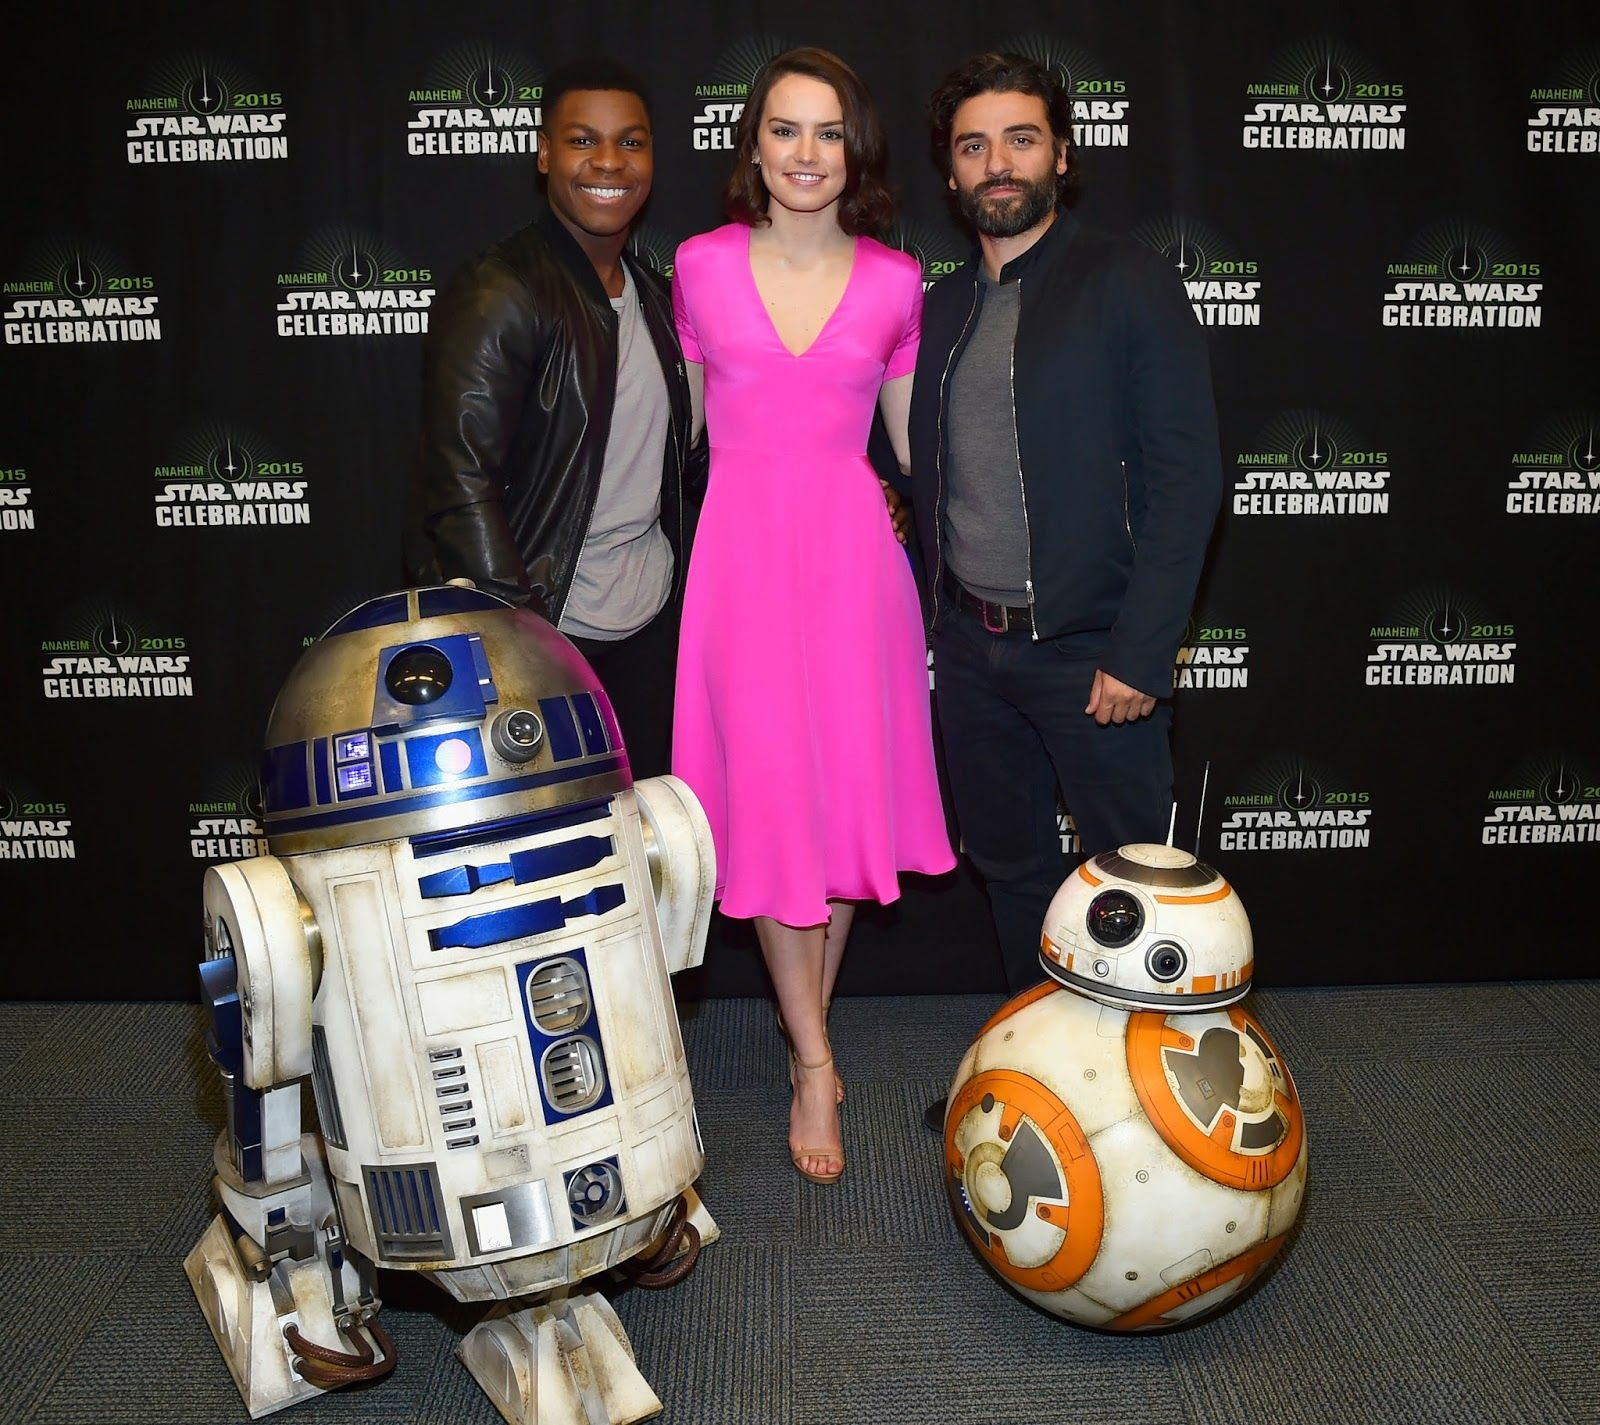 Star Wars Celebration Backstage Photos from Star Wars: The Force Awakens Panel